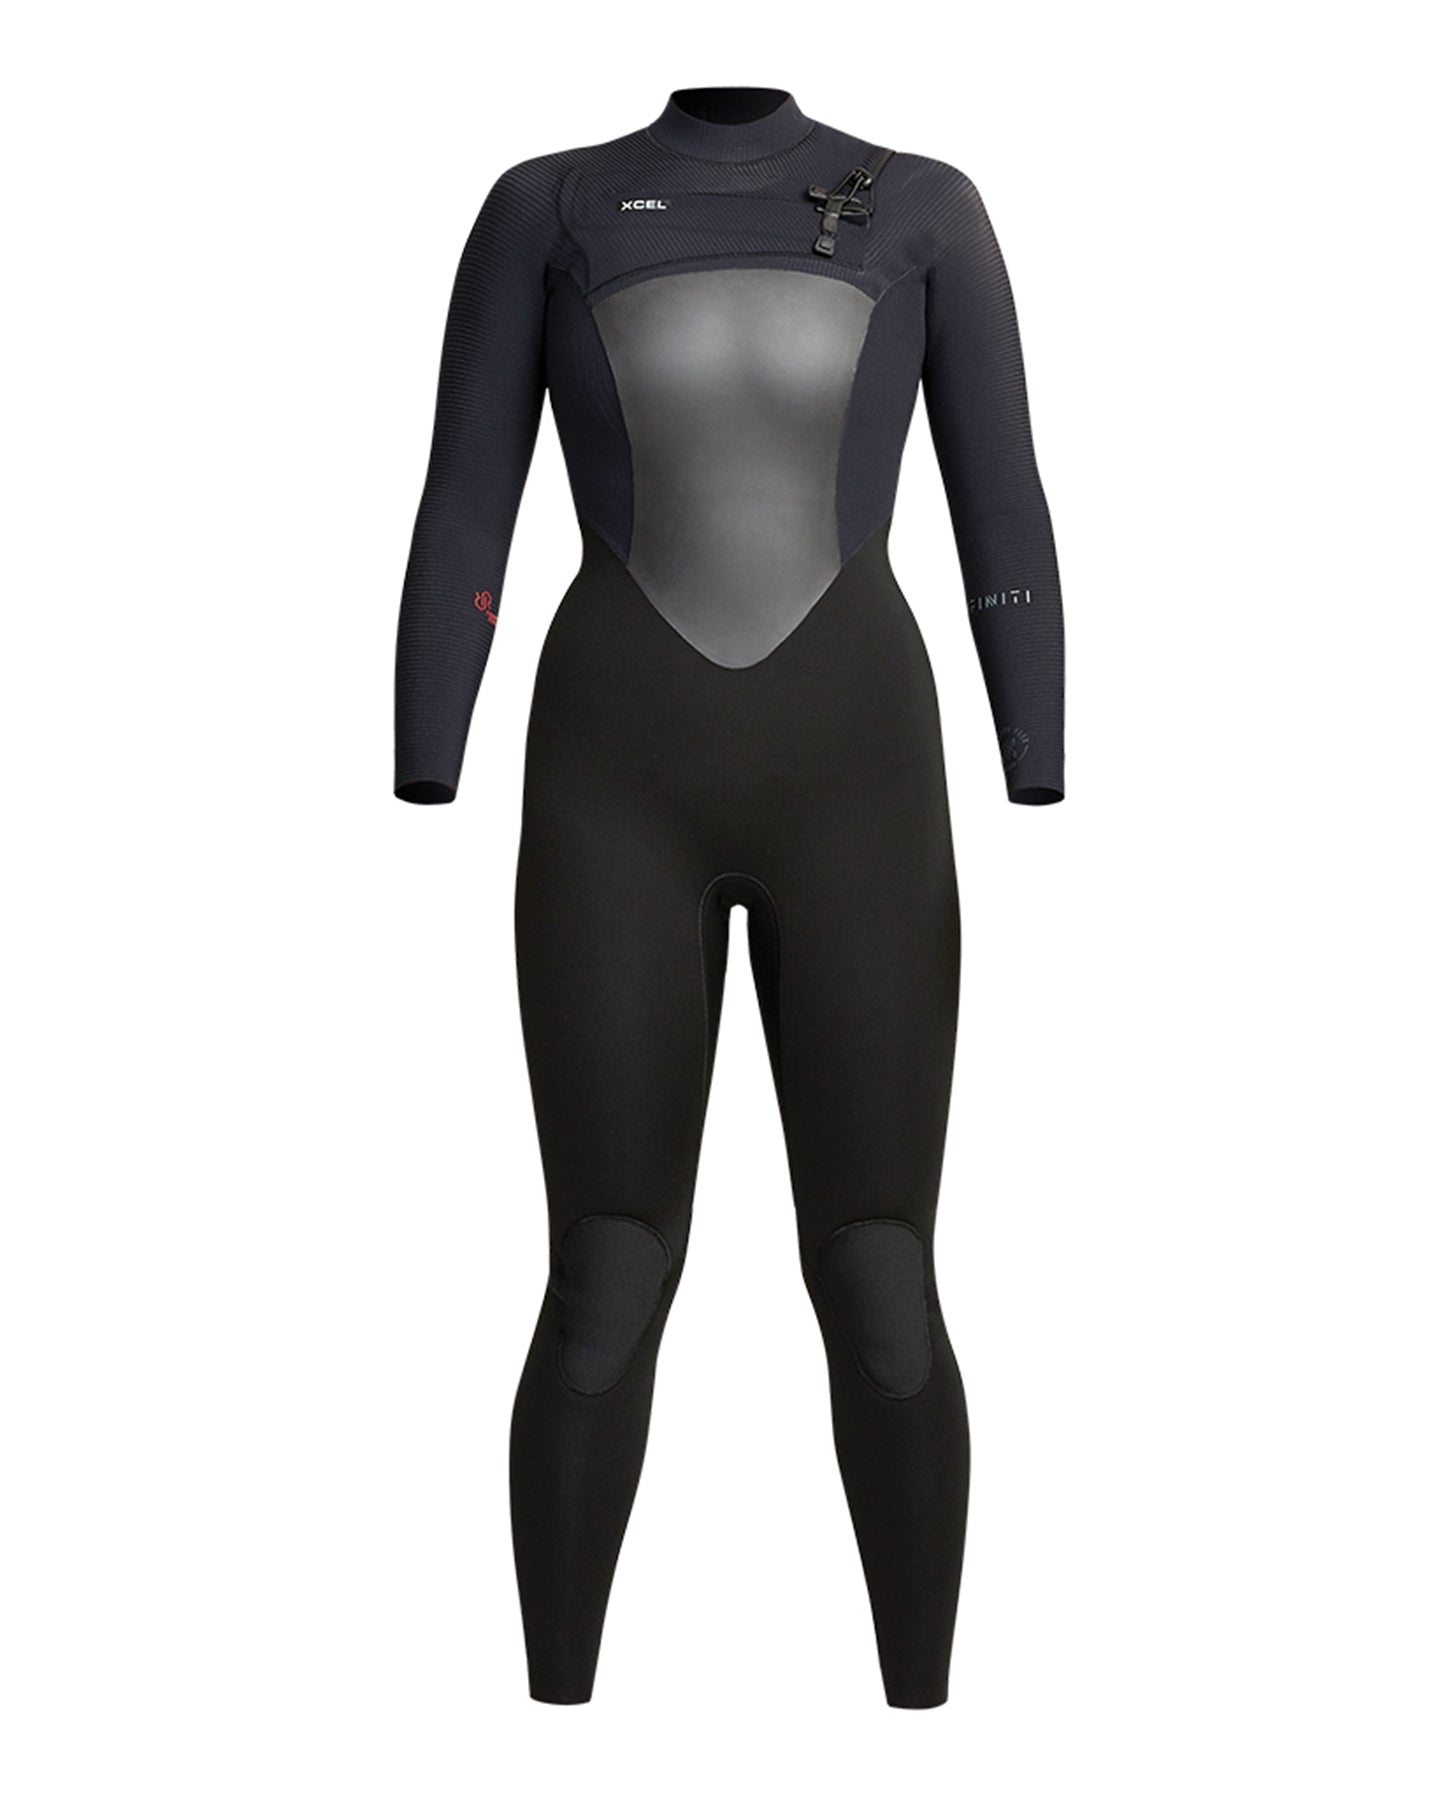 XCEL WOMENS RADIANT REBOUND 3/2 FULLSUIT CHEST ZIP - BLACK 2021 - Board Store XcelWetsuits